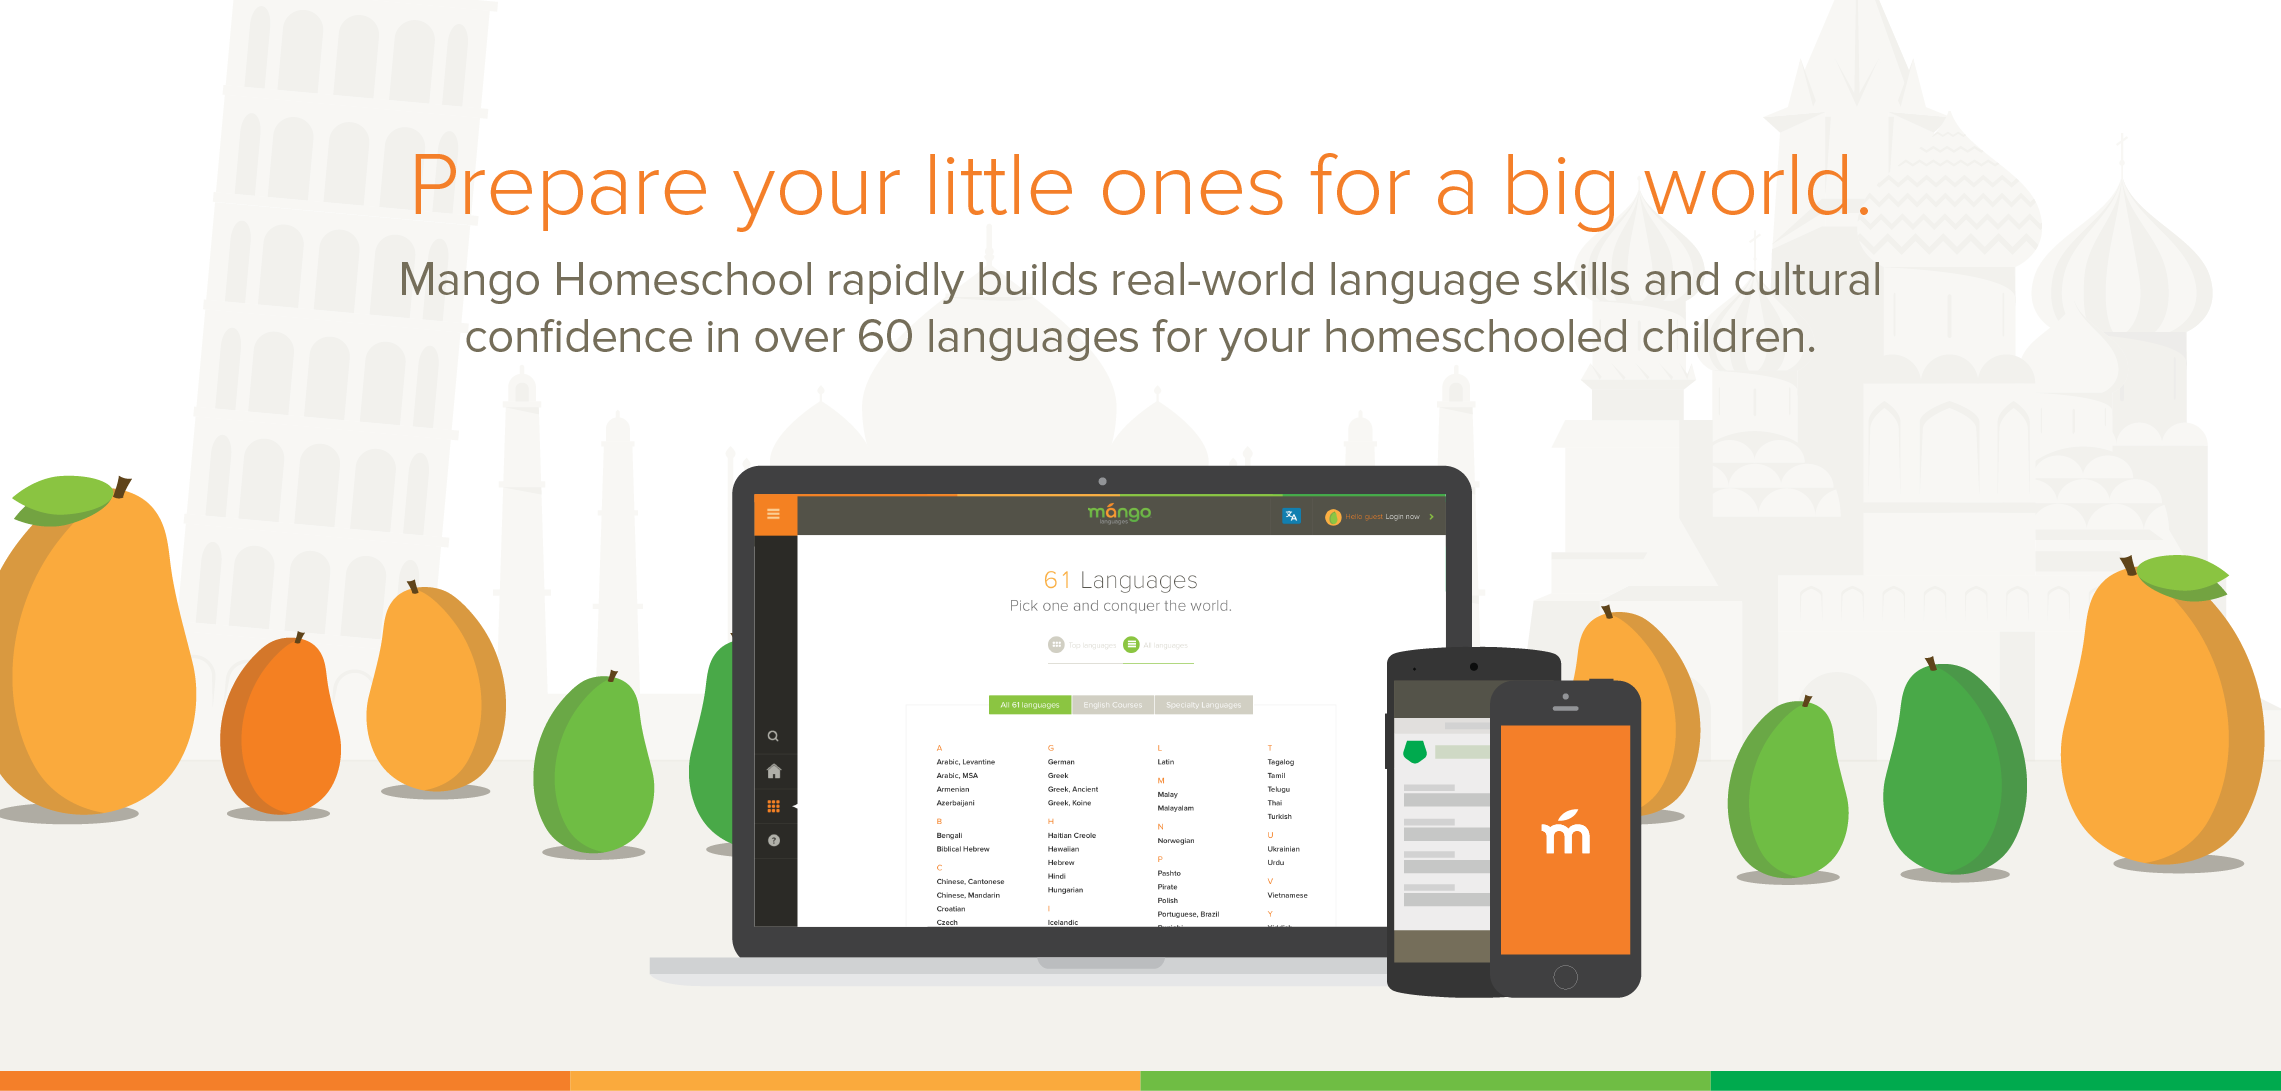 Mango Homeschool Prepare your little ones for a big